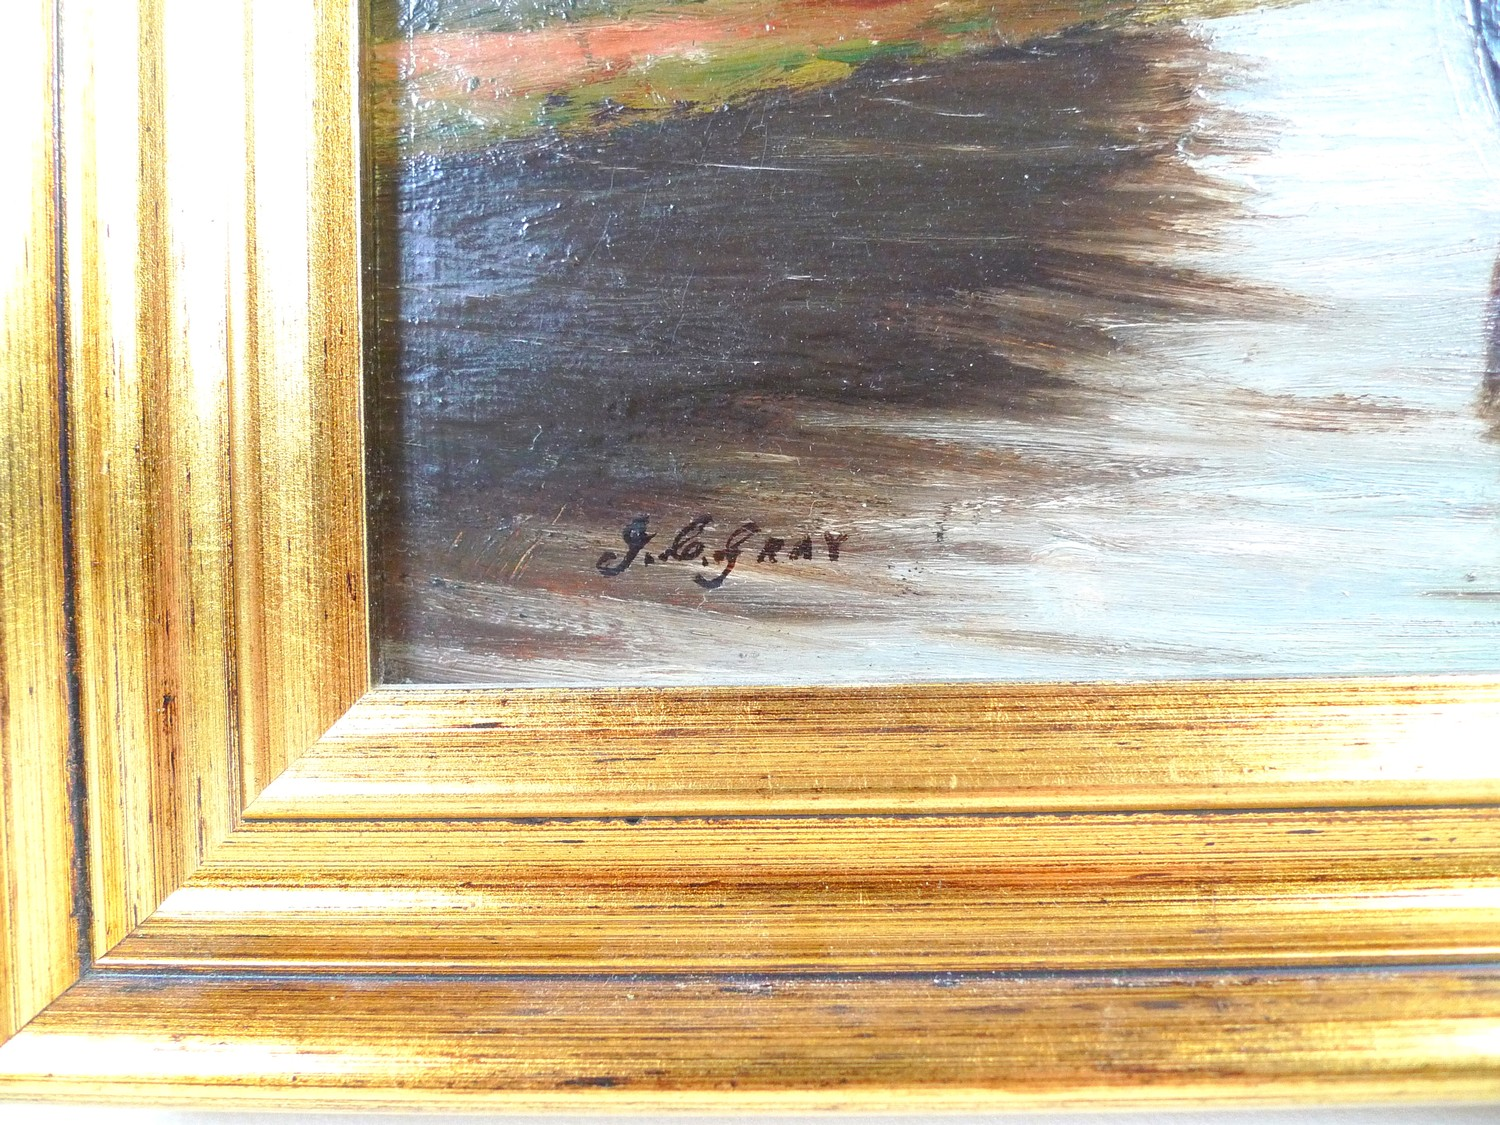 John C. Gray (Scottish, circa 1880-1945): boats on a river, signed lower left, oil on board, 16.5 by - Image 3 of 5